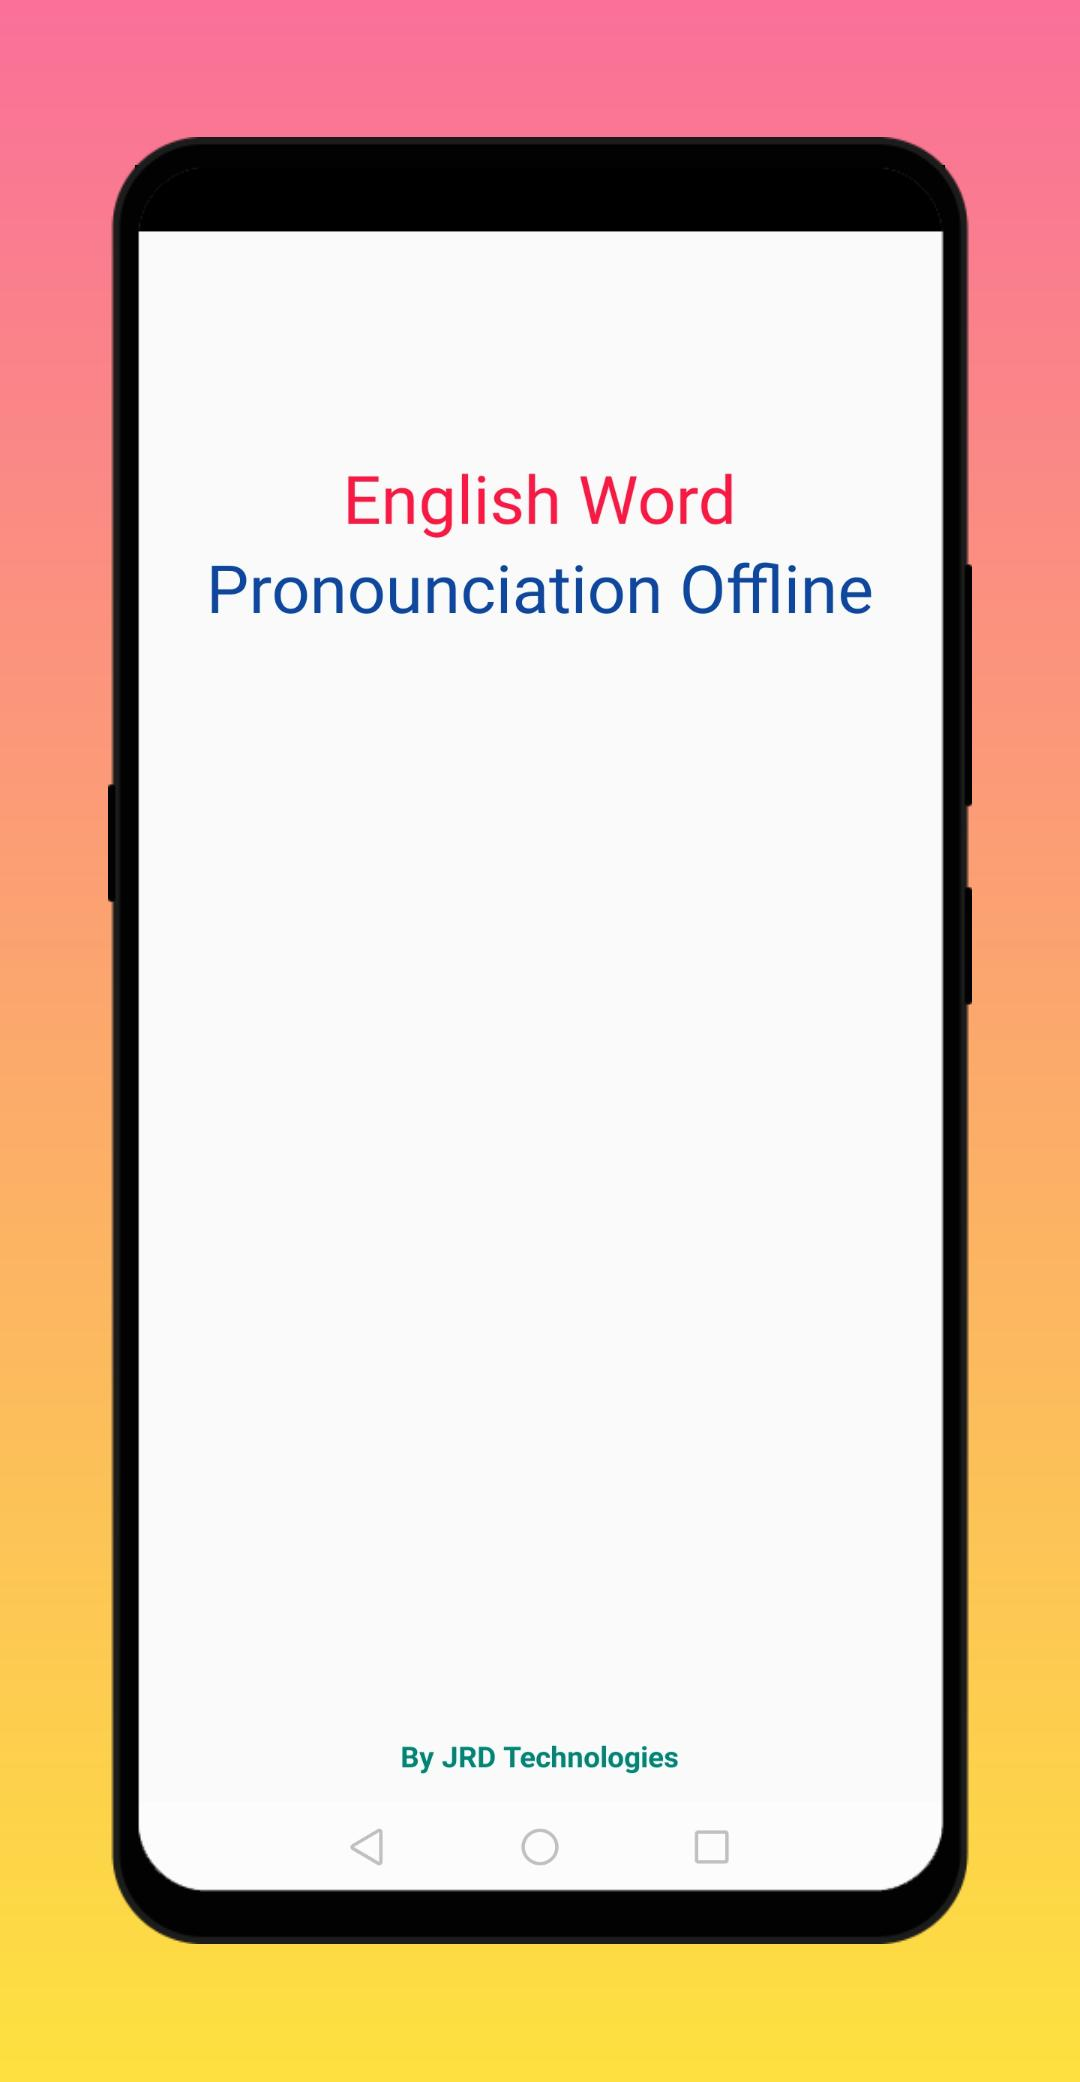 English Word Pronounciation Offline For Android Apk Download Uk:*uk and possibly other pronunciationsuk and possibly other pronunciations/prəˌnʌnsiˈeɪʃən/. apkpure com